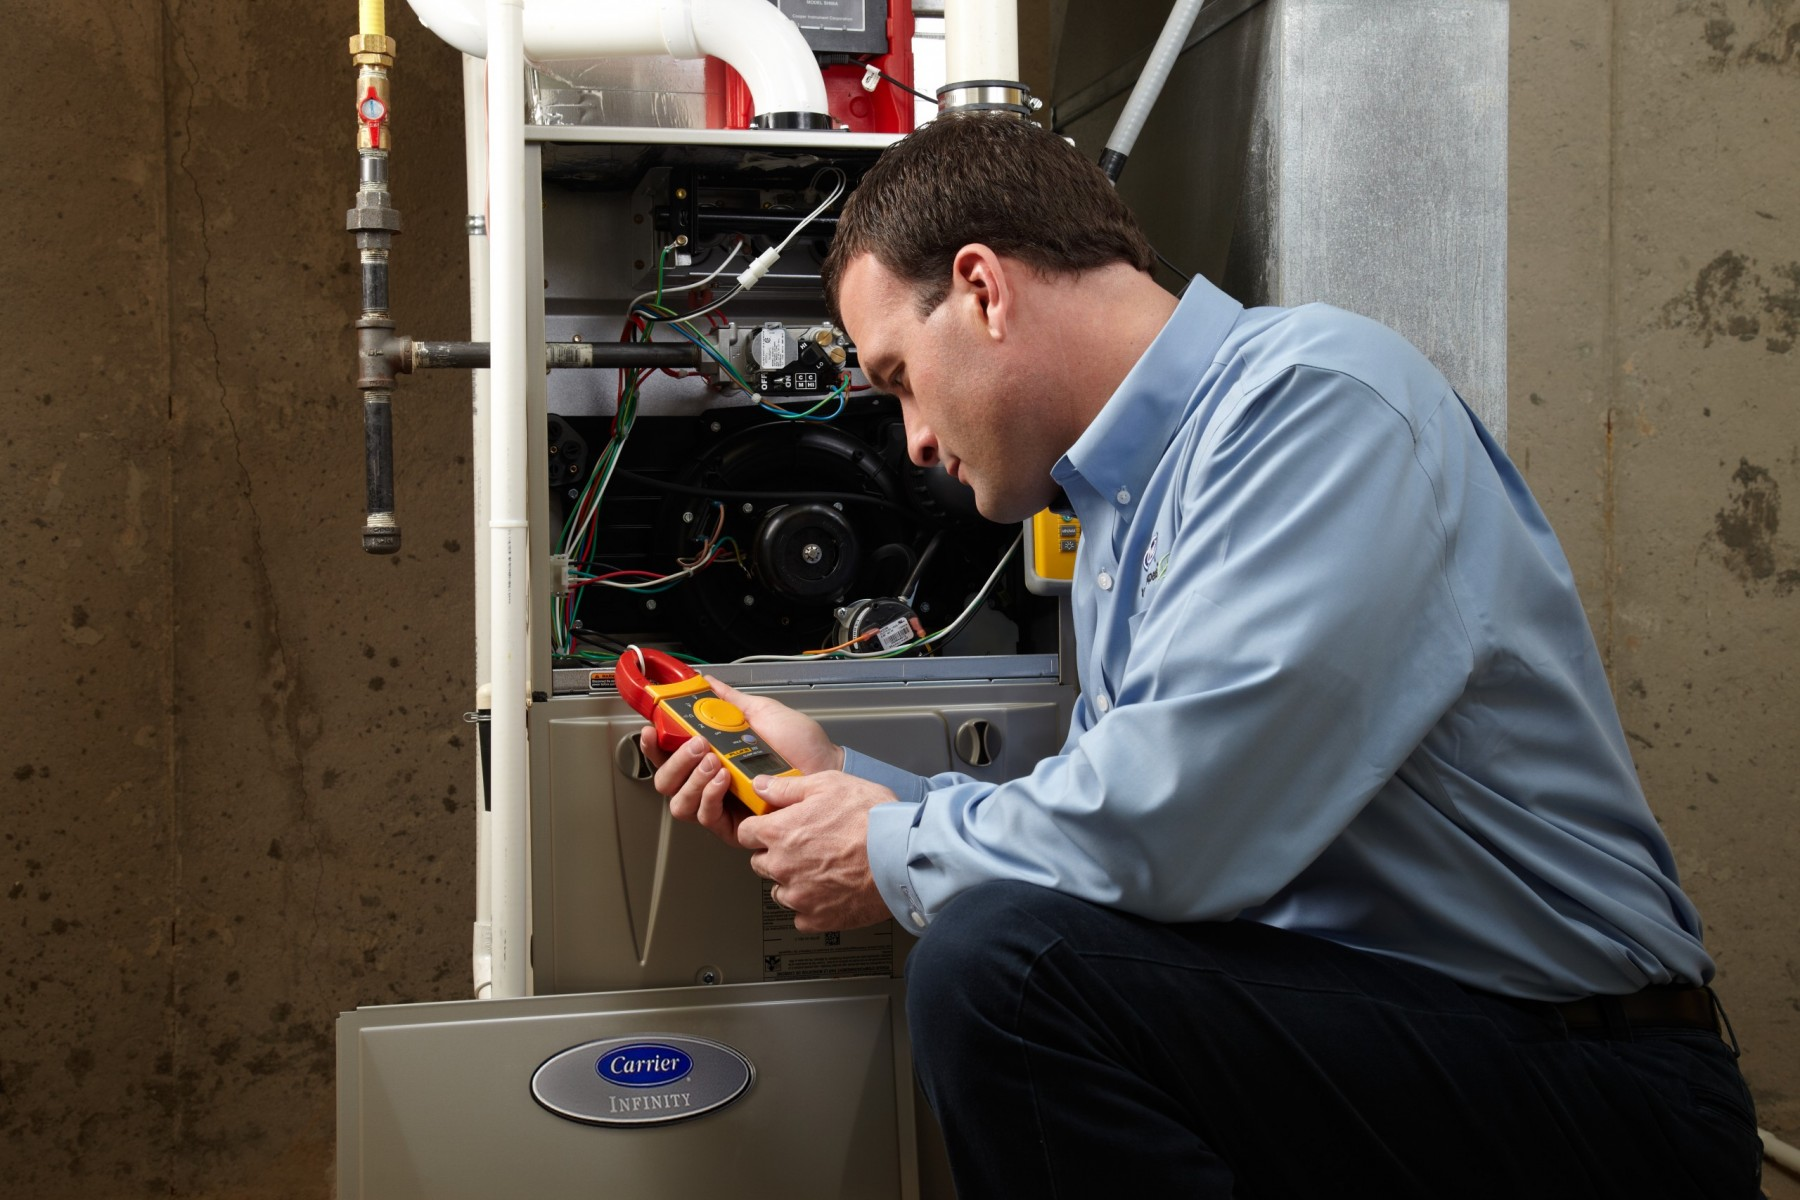 Furnace tune-ups in Boston residential and commercial heat systems.